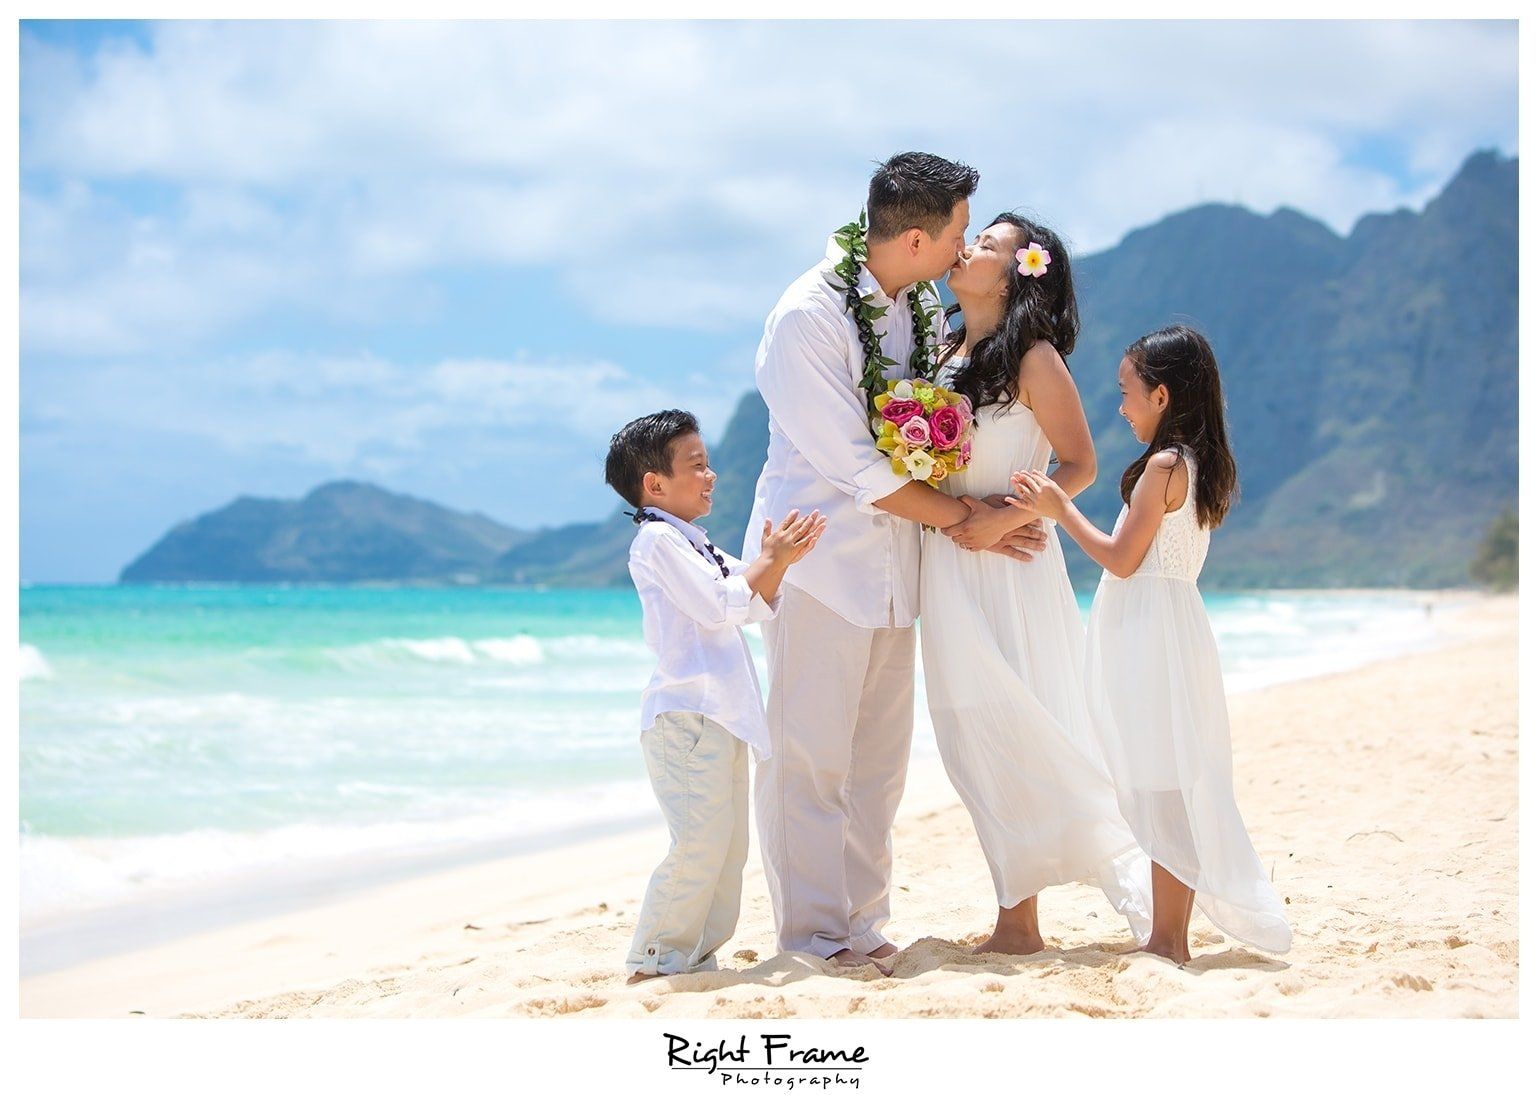 10 Perfect Wedding Vow Renewal Ceremony Ideas wedding vow renewal in oahu hawaiiright frame 2020